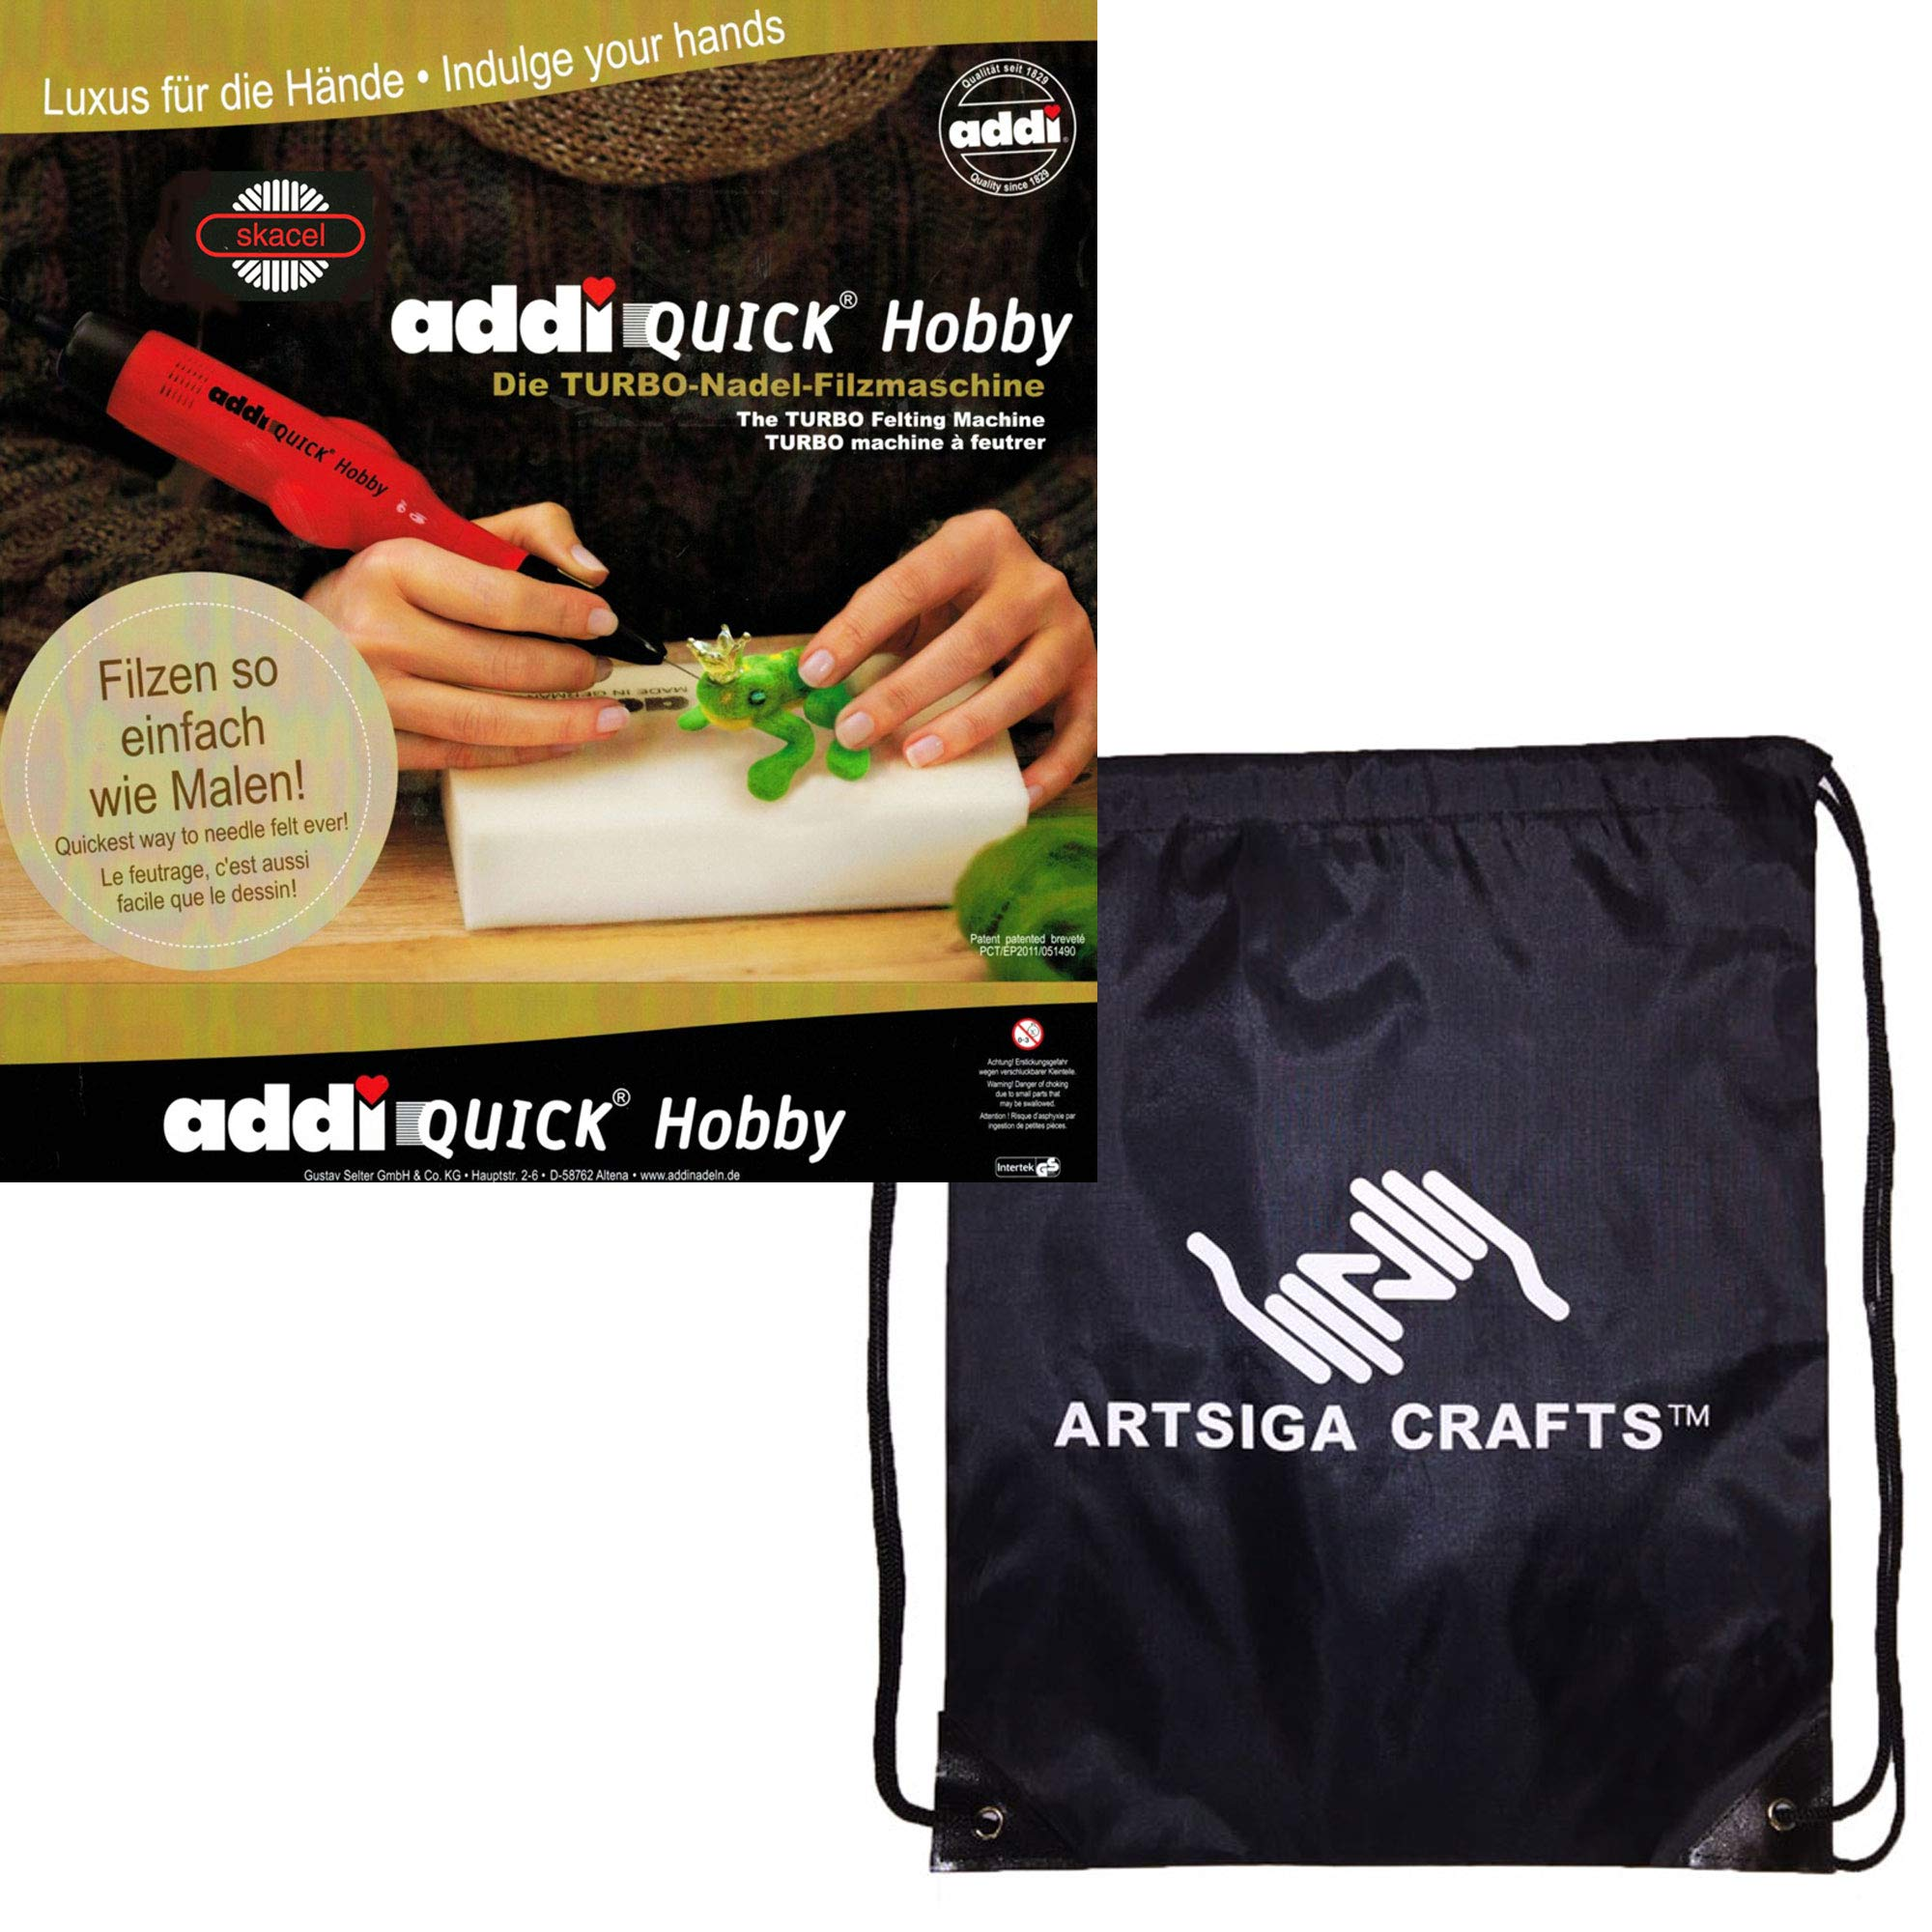 addi Knitting Needles Quick Hobby Turbo Needle Felting Machine 850-2 Bundle with 1 Artsiga Crafts Project Bag by Addi Knitting Needles